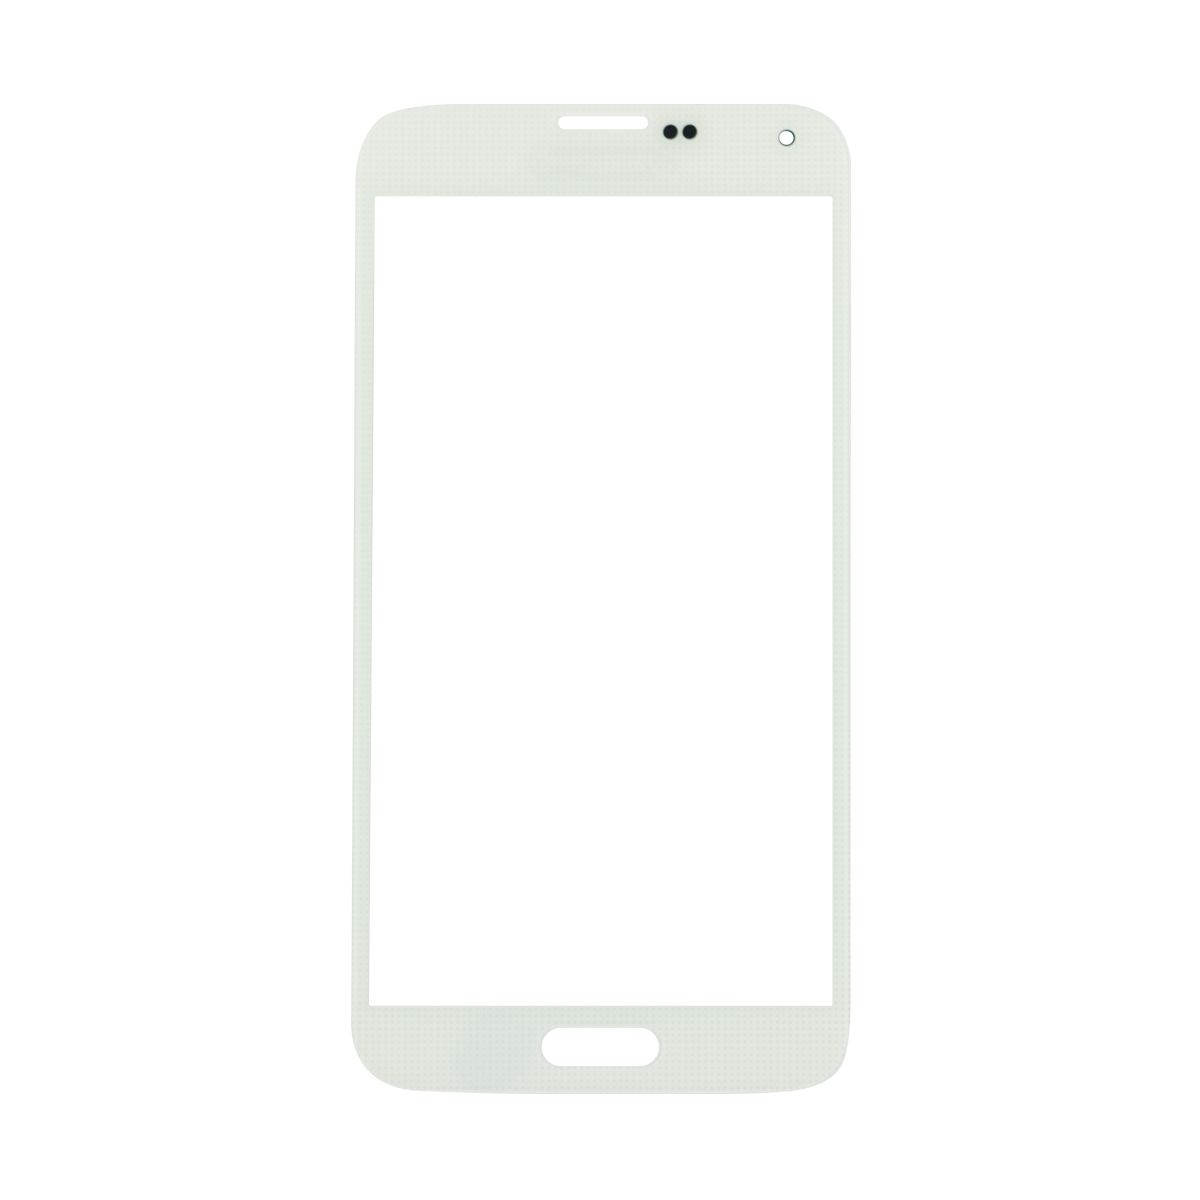 Samsung Galaxy S5 Glass Lens Screen Repl #76088.